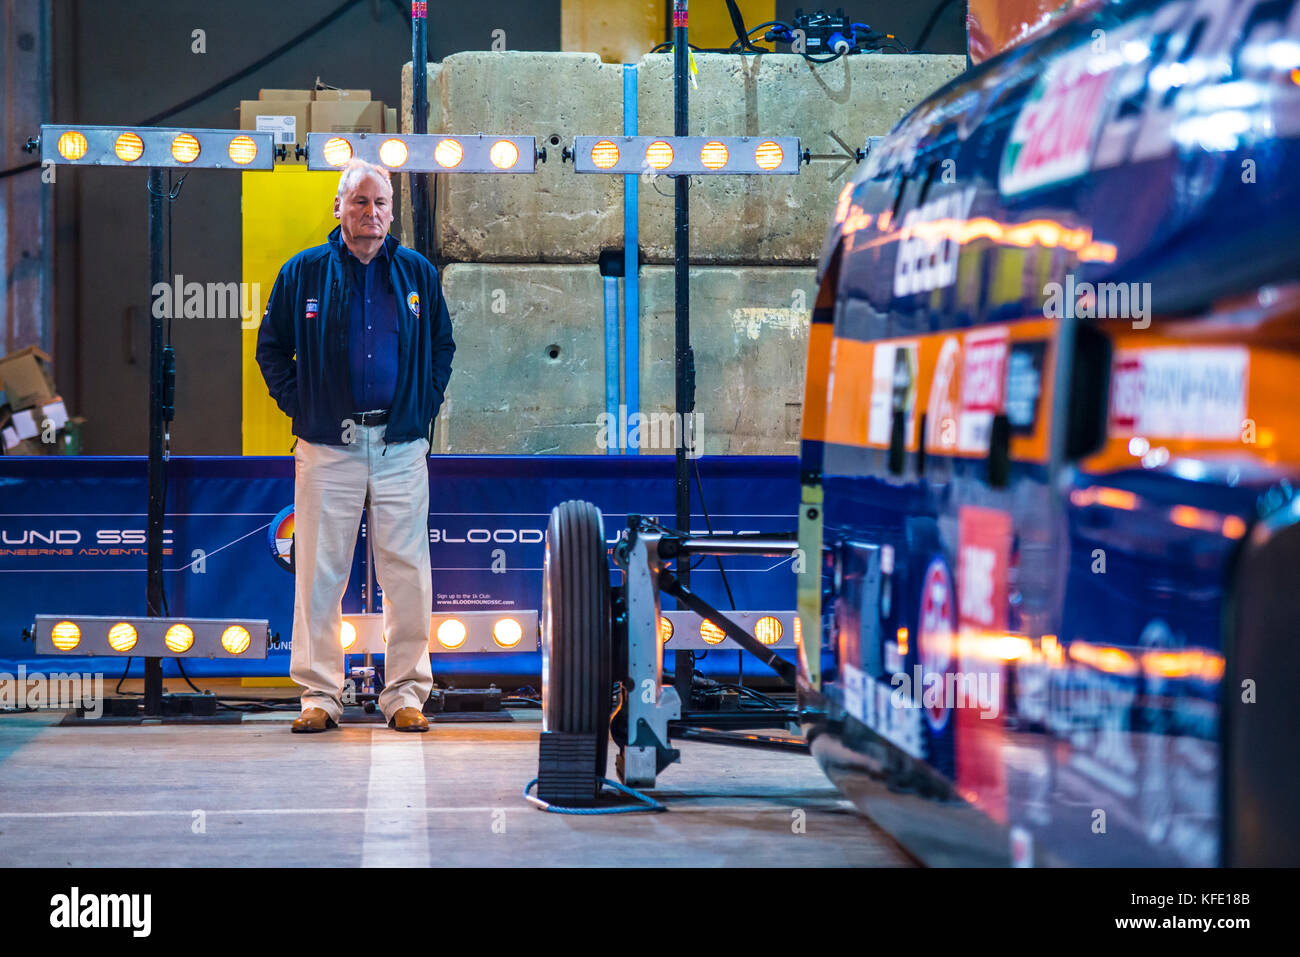 Former land speed record holder Richard Noble at the roll out of Bloodhound SSC supersonic car. In hangar at Cornwall - Stock Image